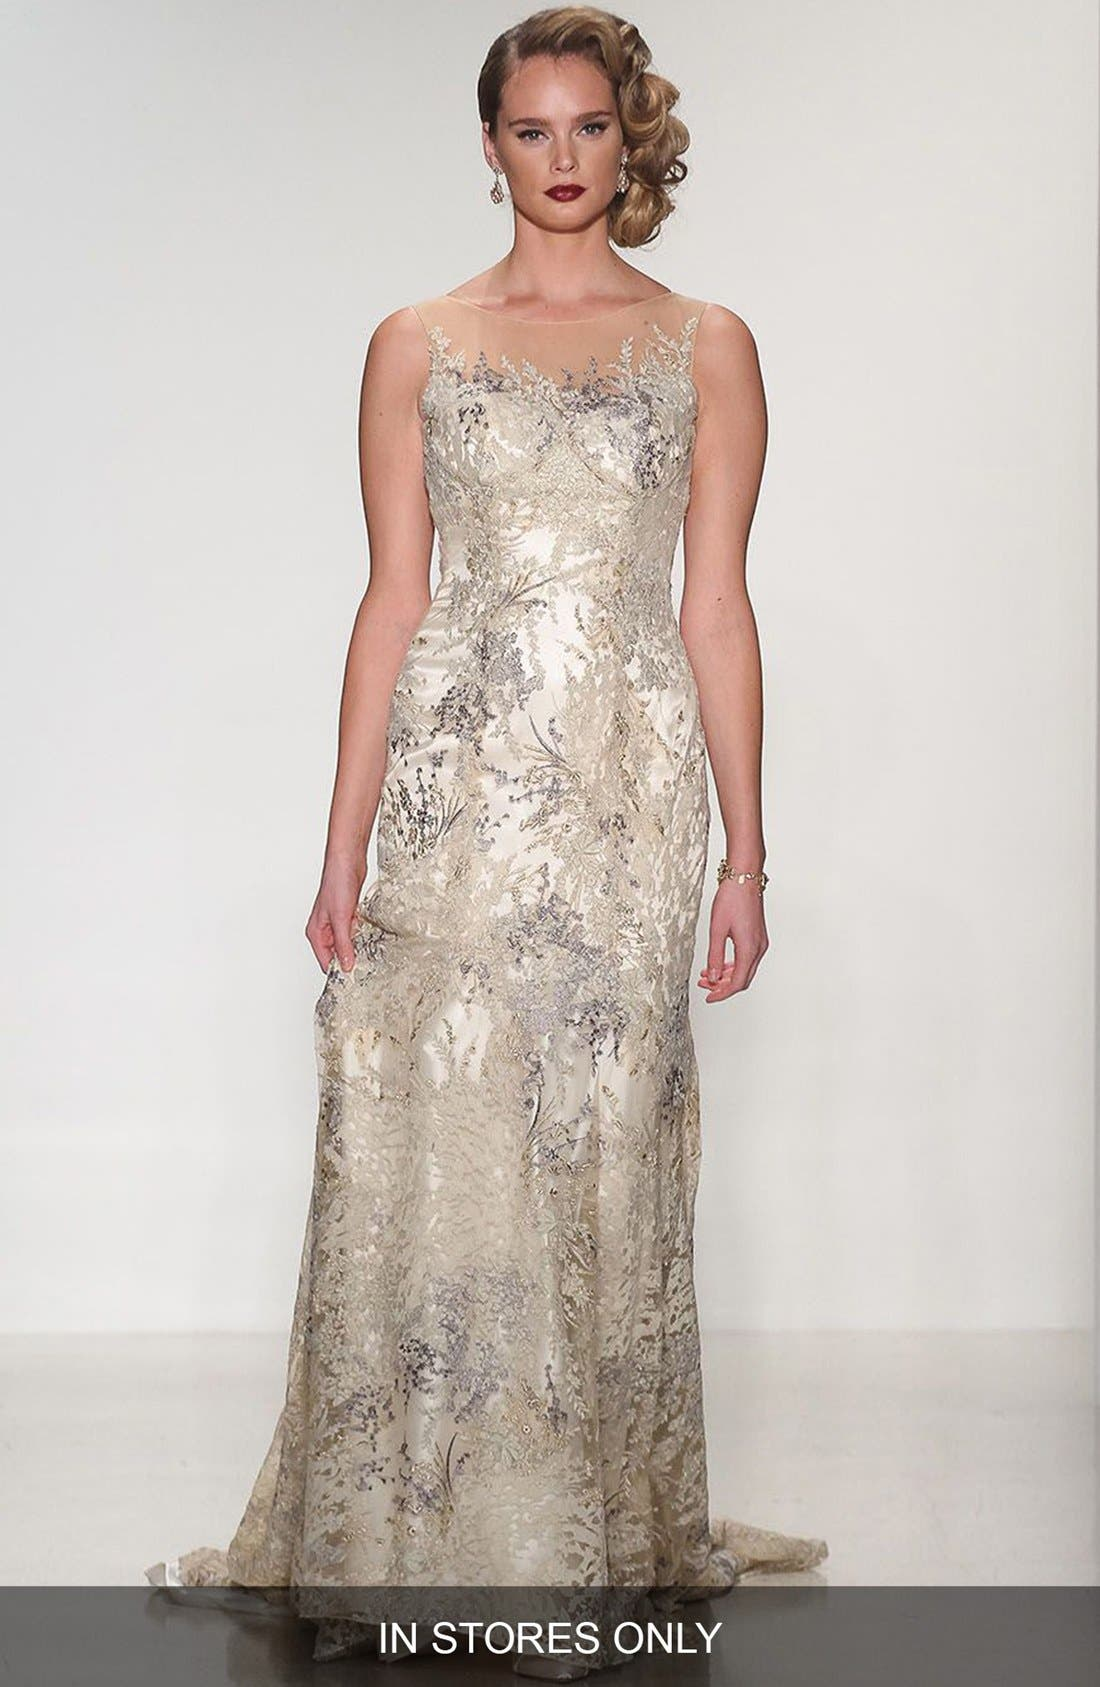 Thyme Sleeveless Illusion Embroidered Lace Gown,                             Main thumbnail 1, color,                             901